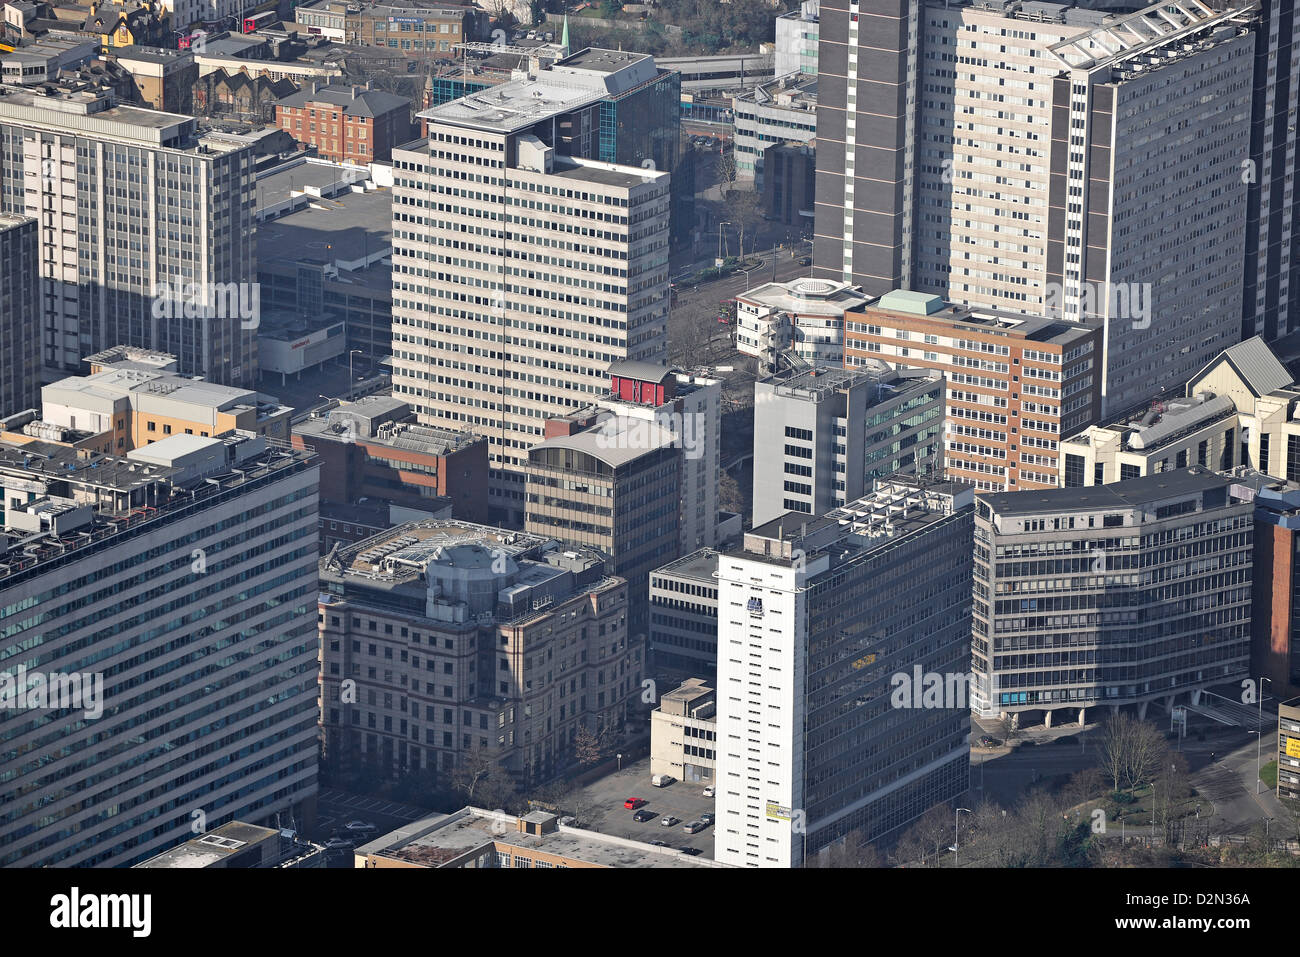 Aerial photograph of central Croydon - Stock Image